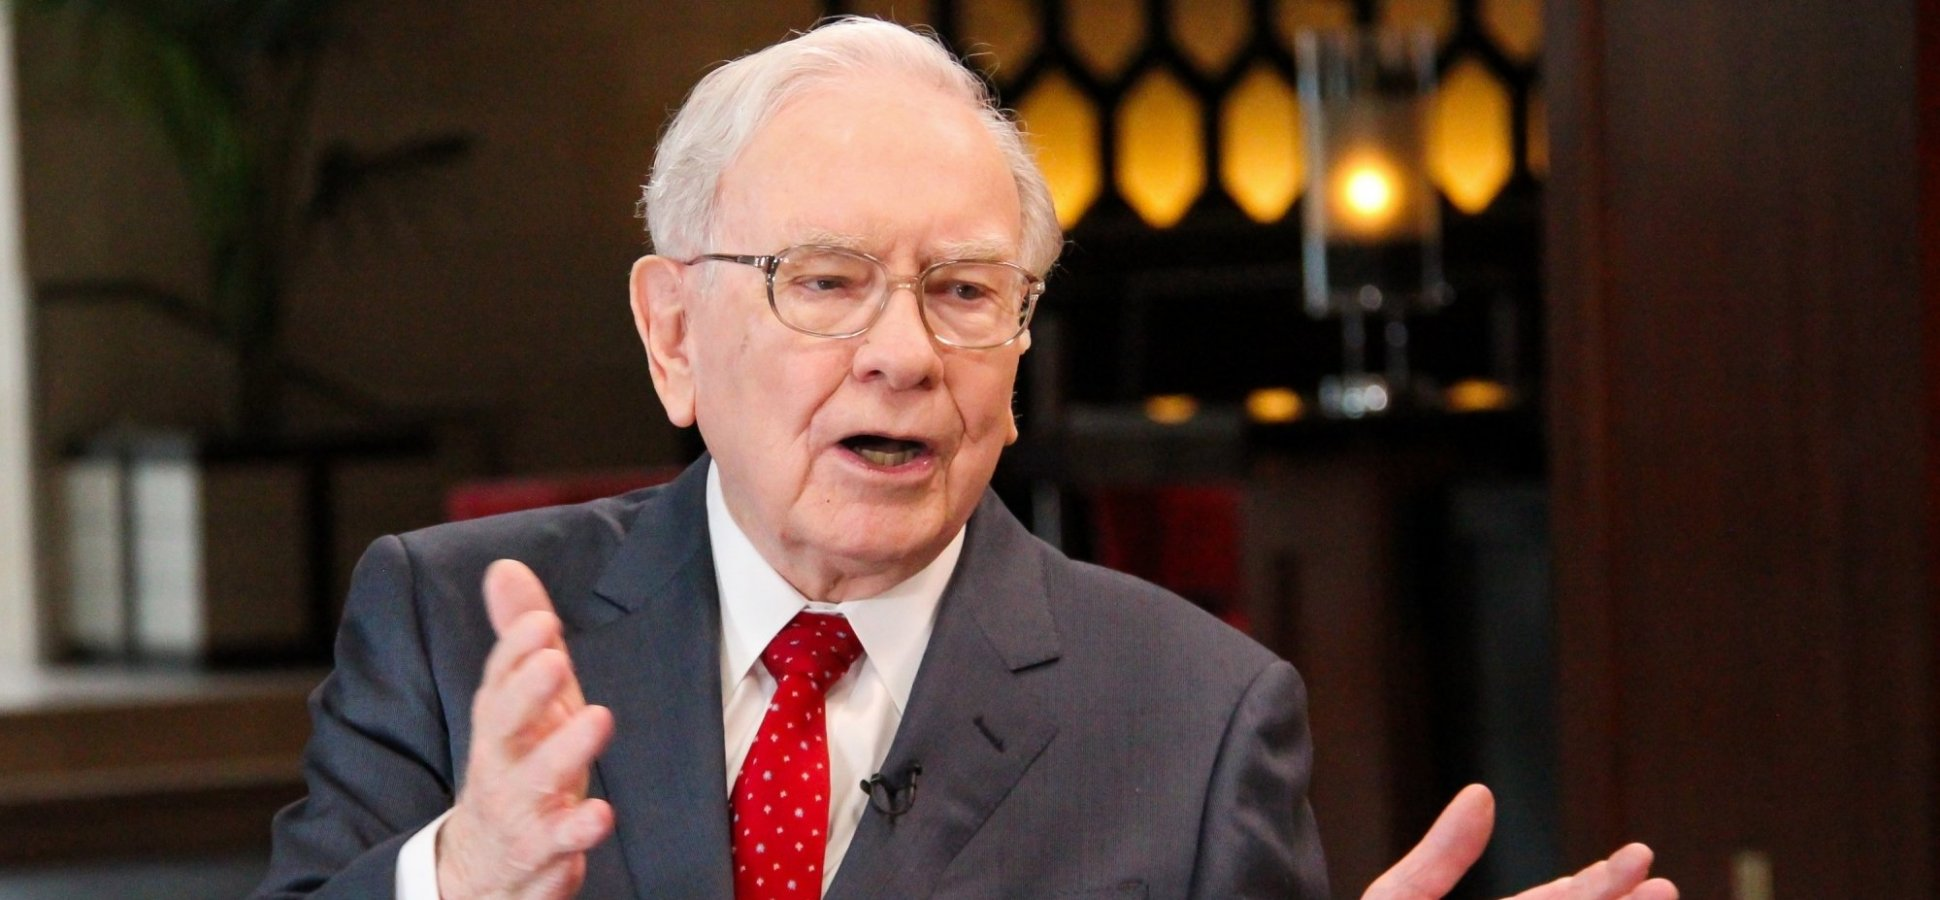 Warren Buffett Says He Became a Self-Made Billionaire Because He Played by 1 Simple Rule of Life (Which Most People Don't)